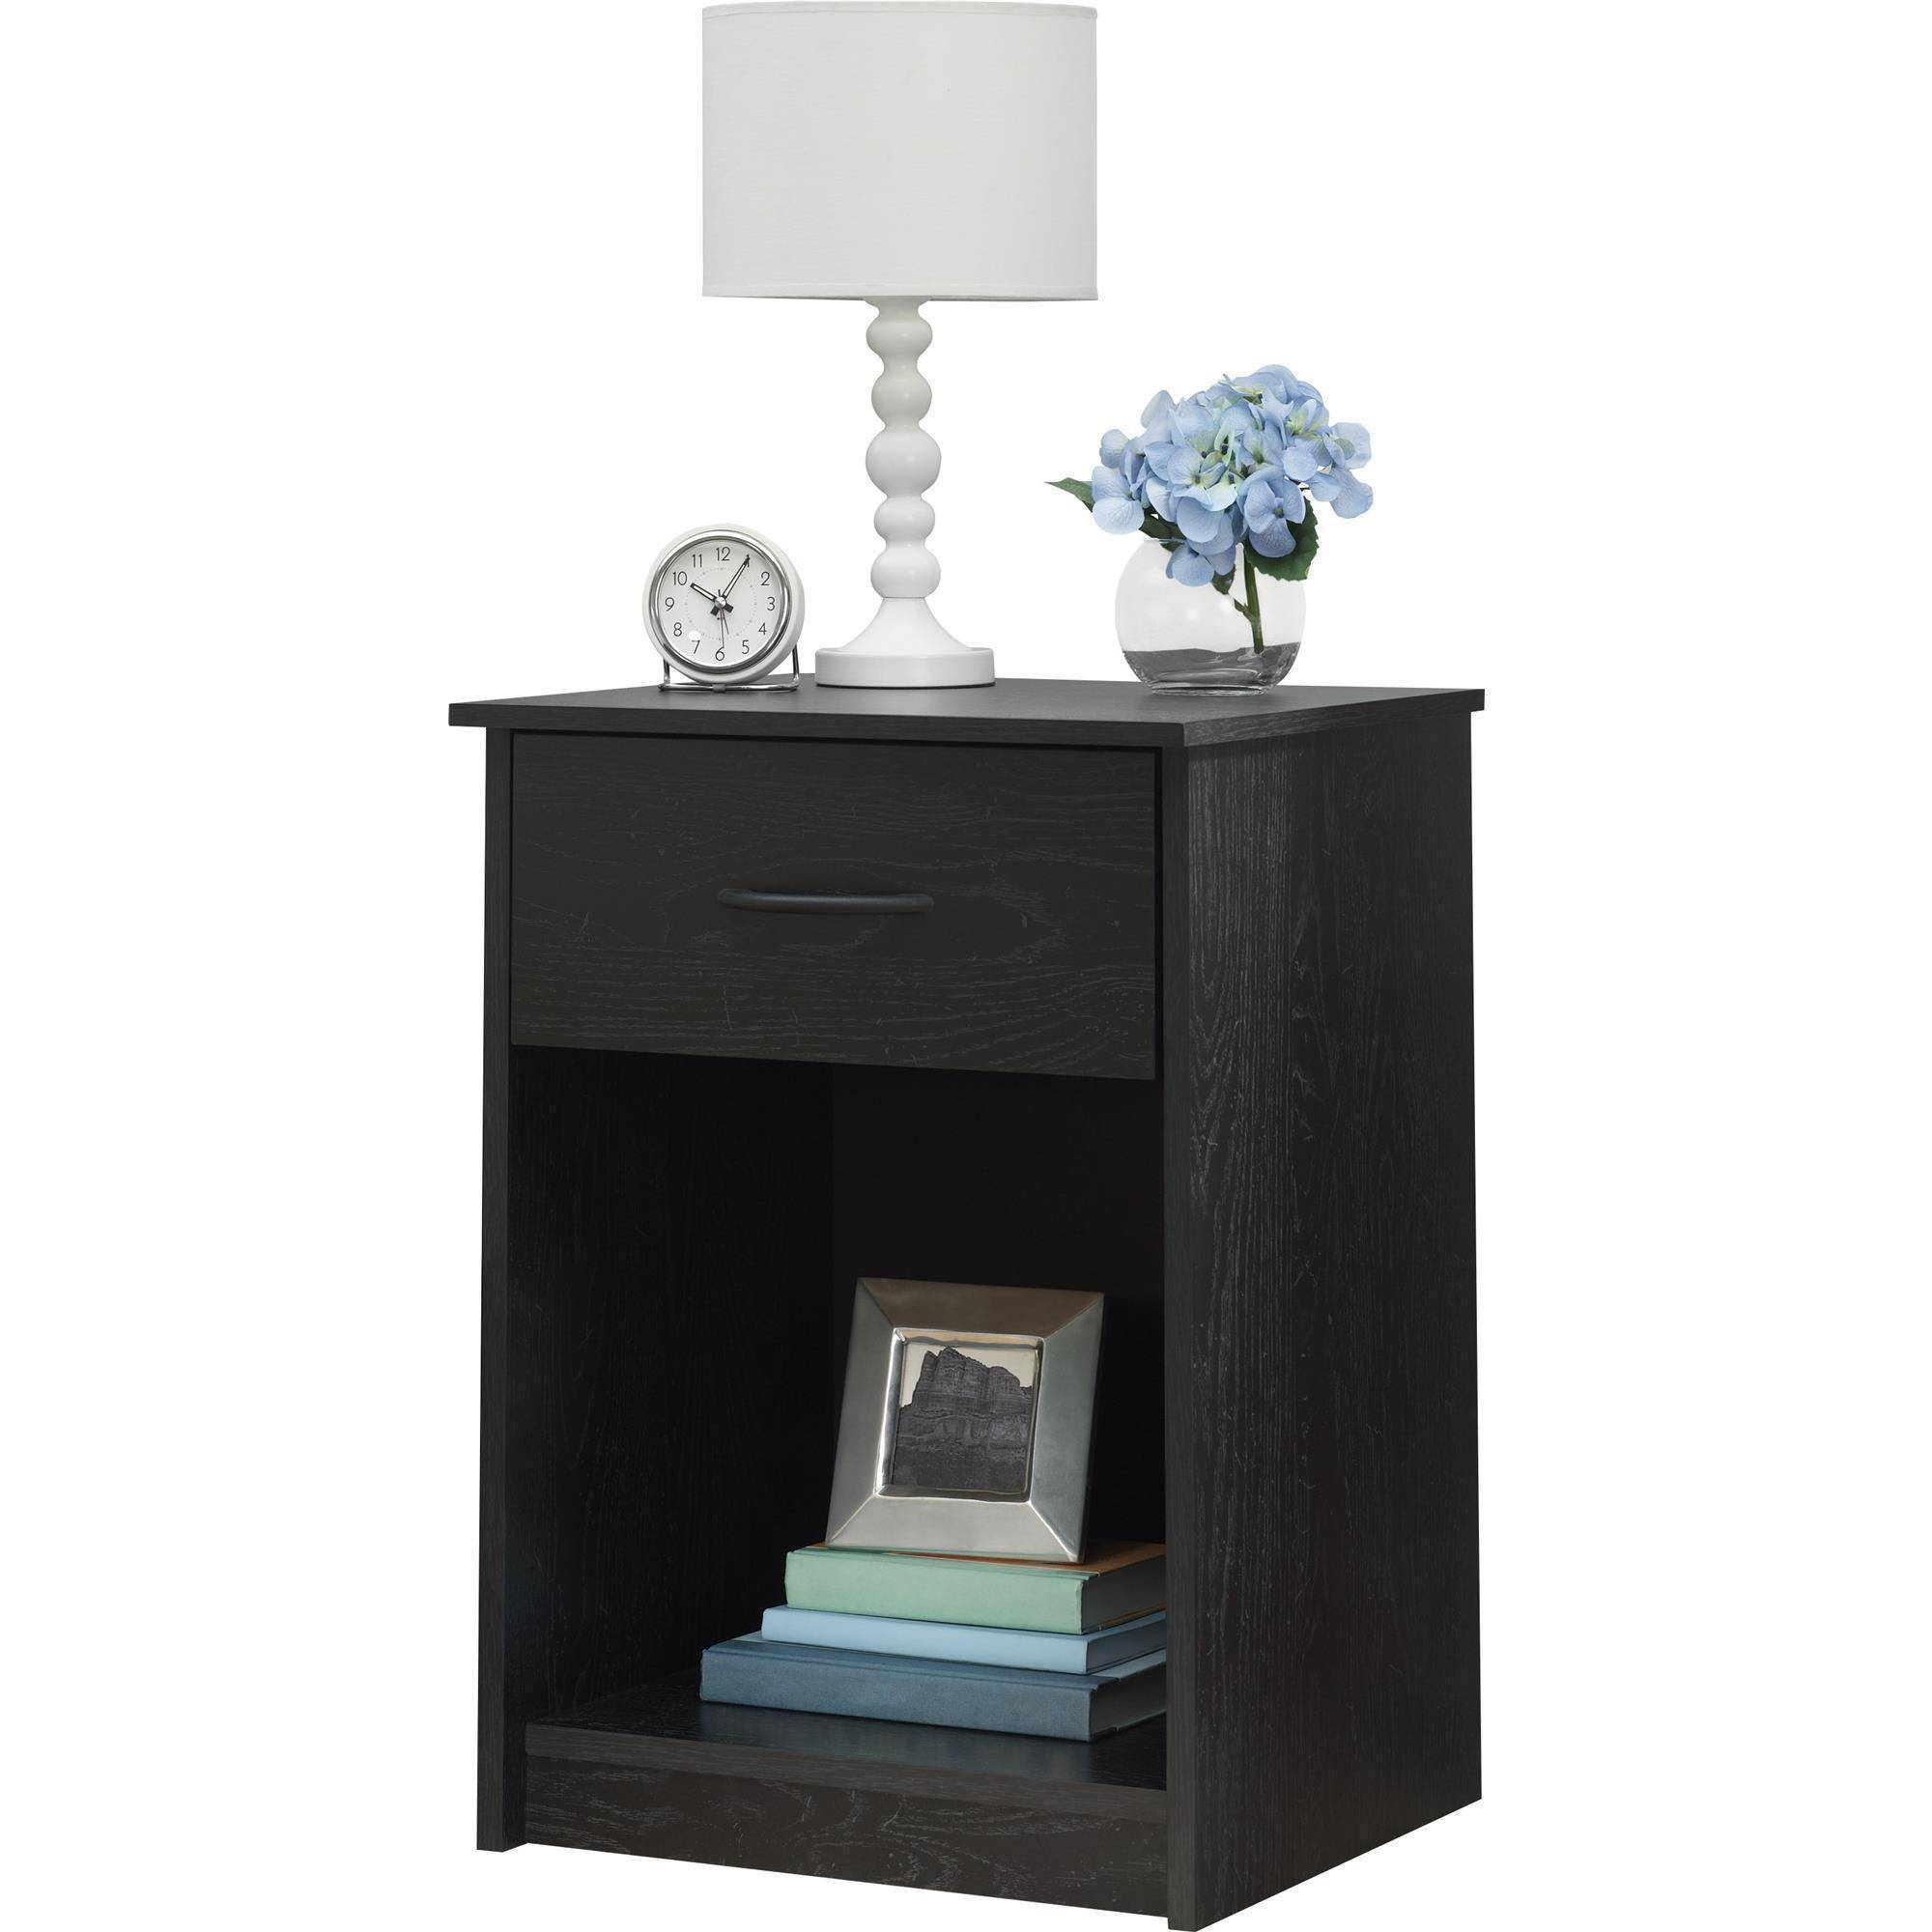 mainstays drawer nightstand end table espresso ashley furniture year warranty kure casual home pet crate tables set two what color with dark brown couch dining coffee combined